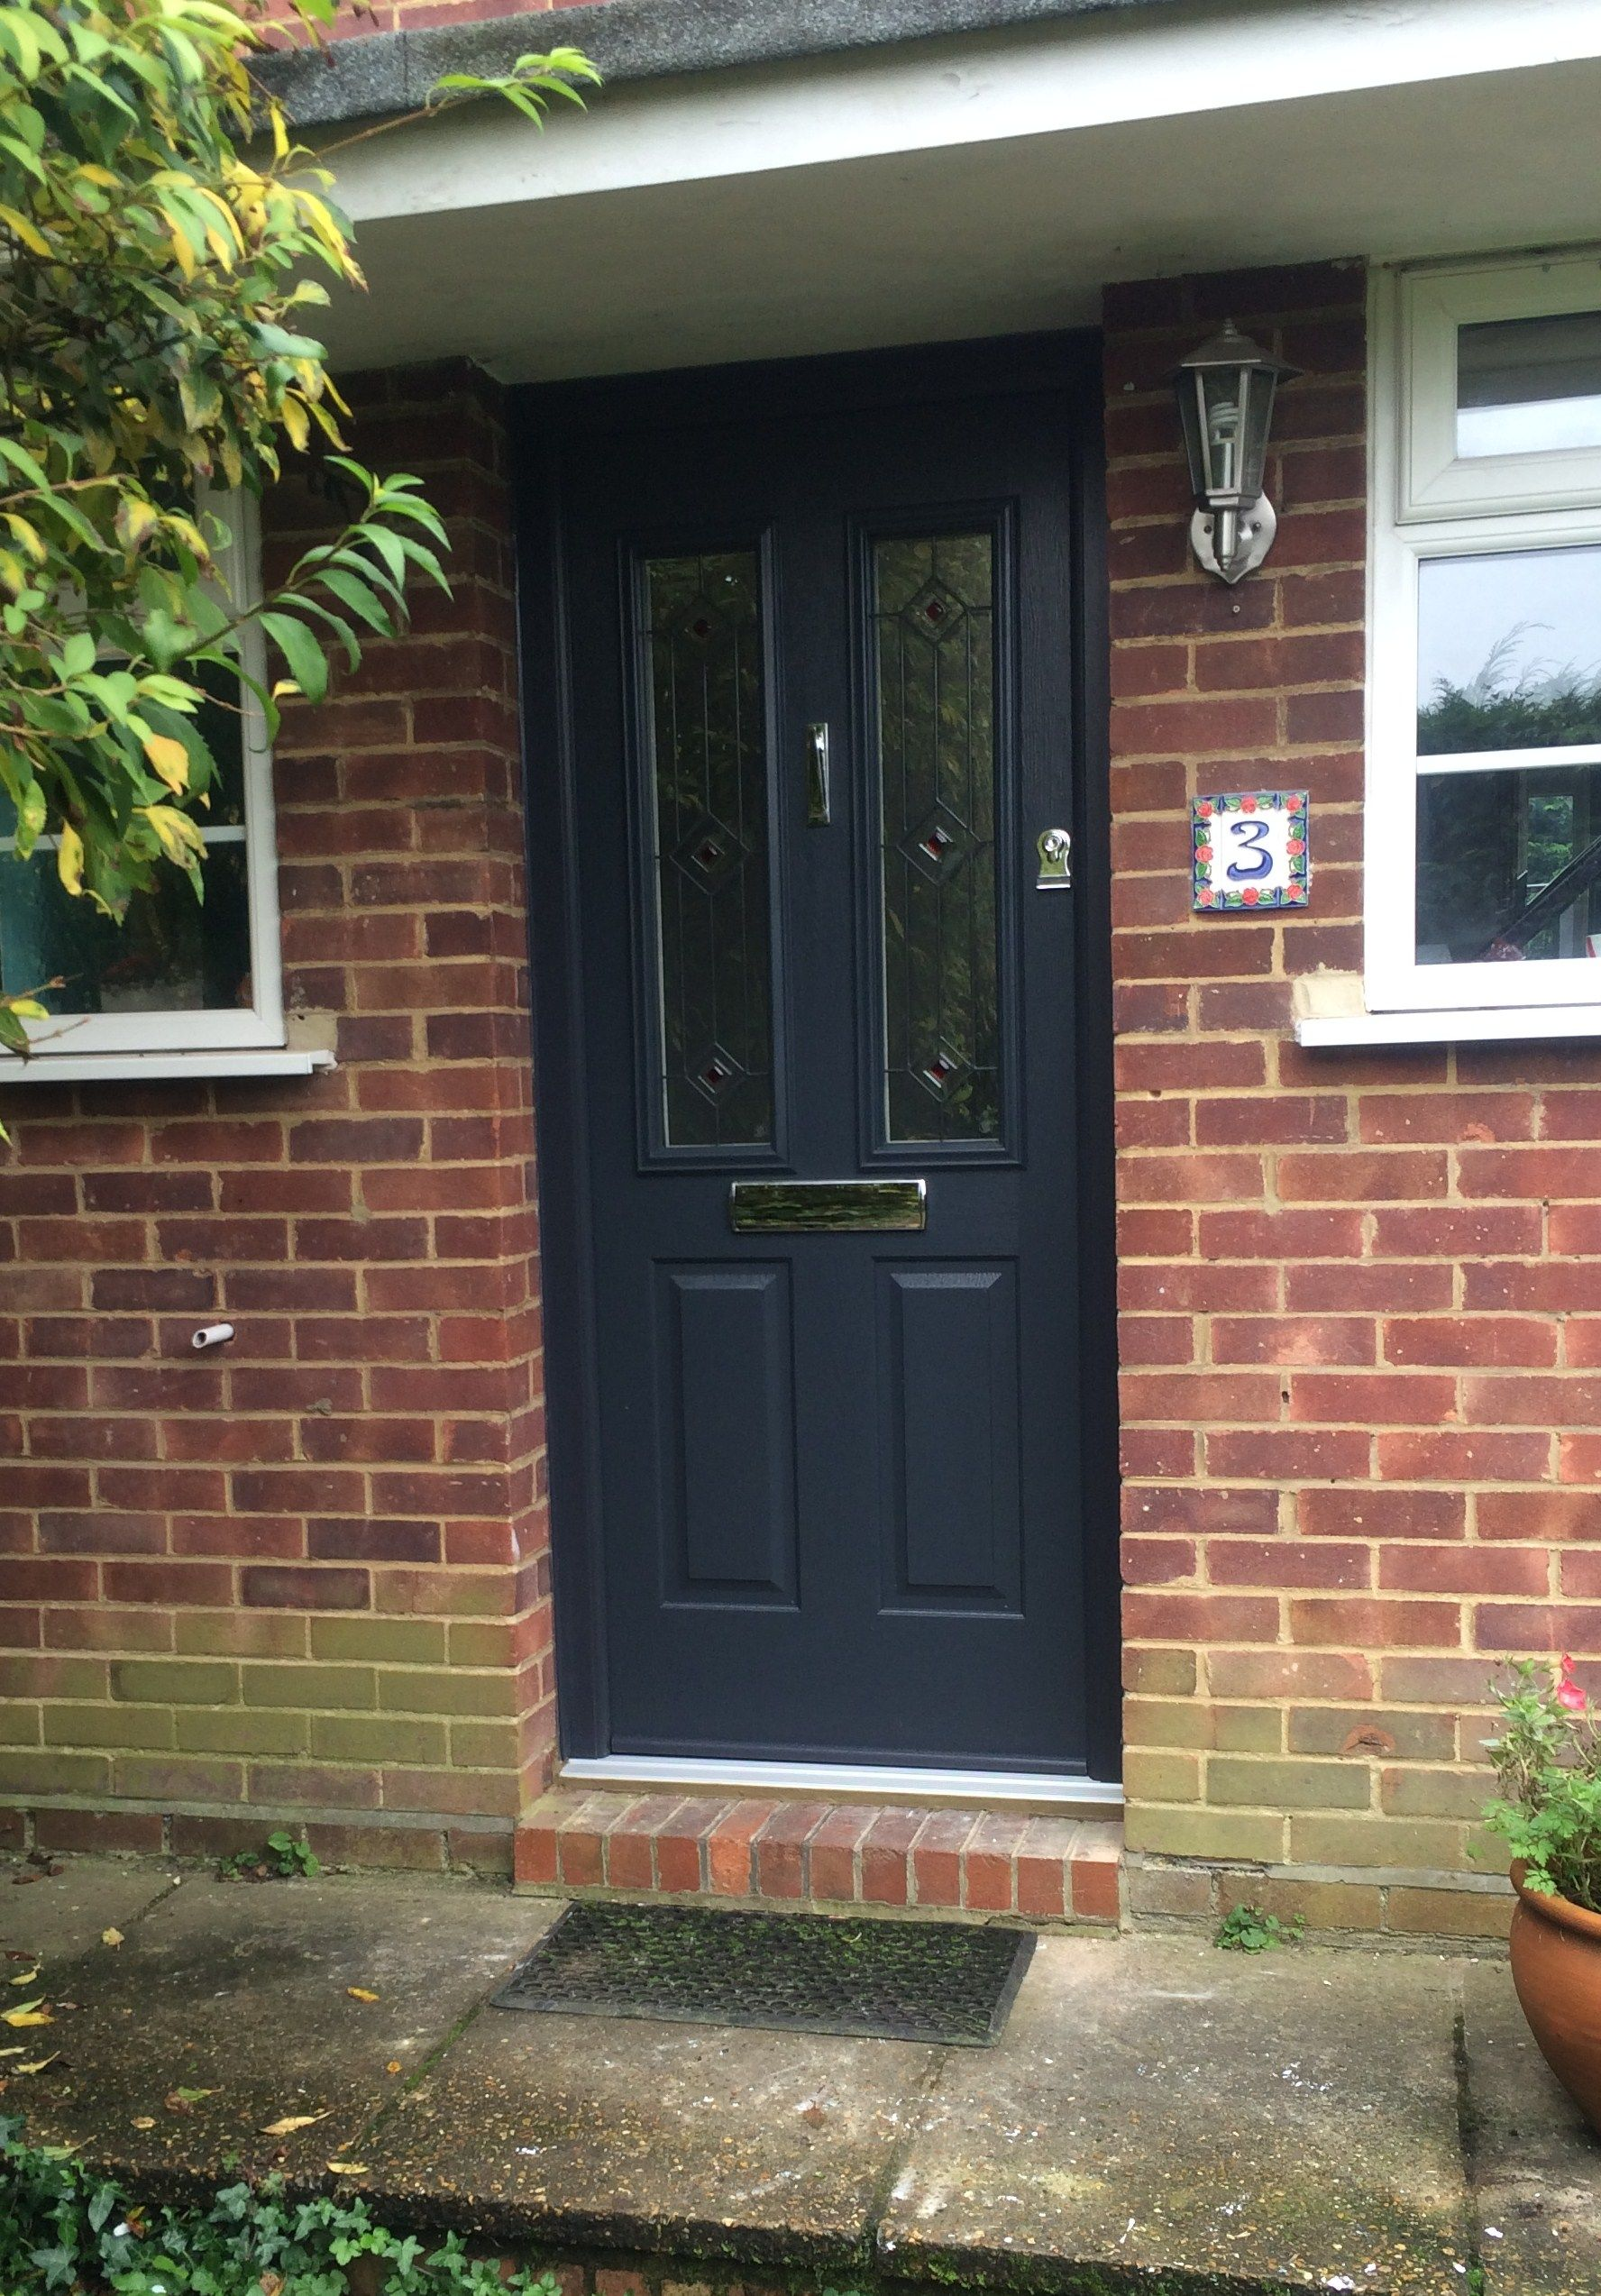 The Ludlow looking smart in anthracite grey with Trio Square Red glass